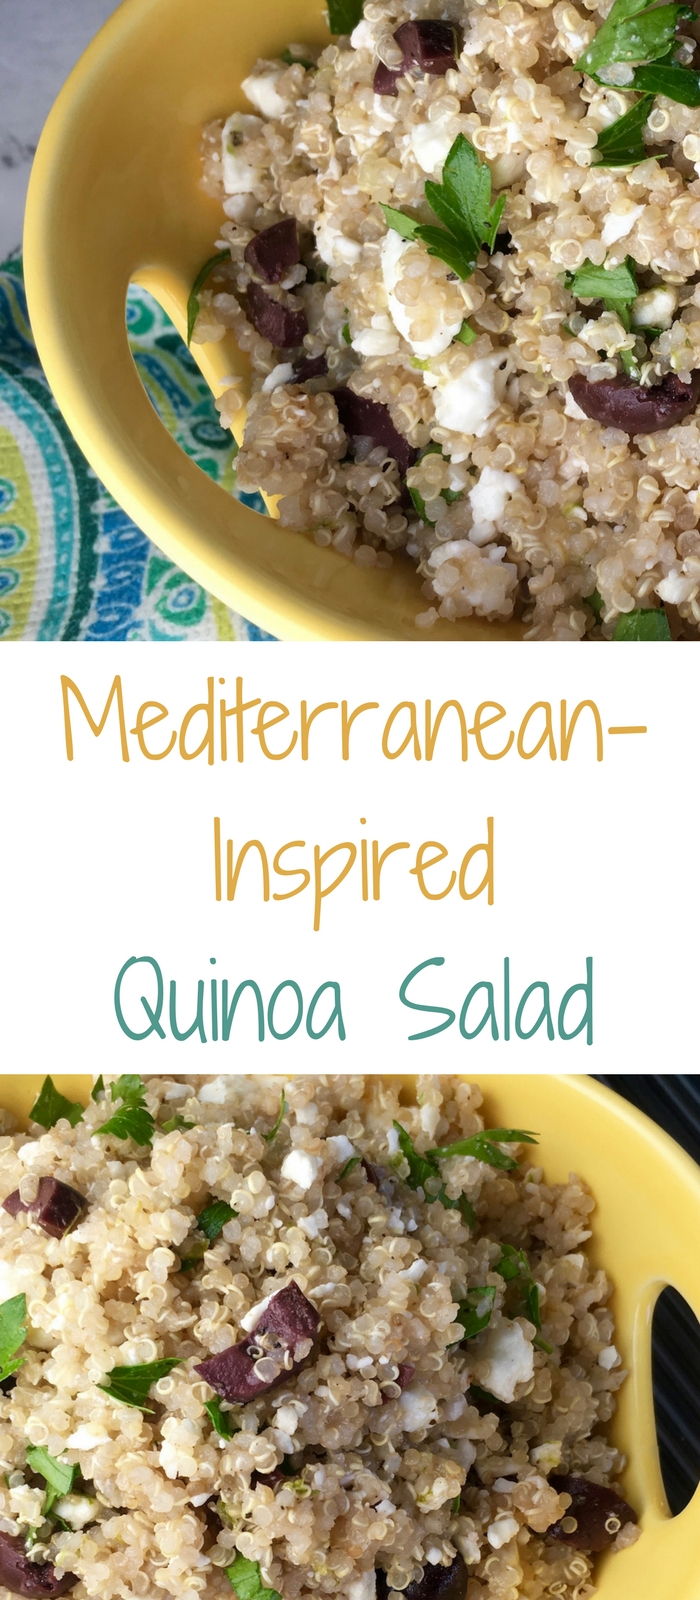 Mediterranean Inspired Quinoa Salad